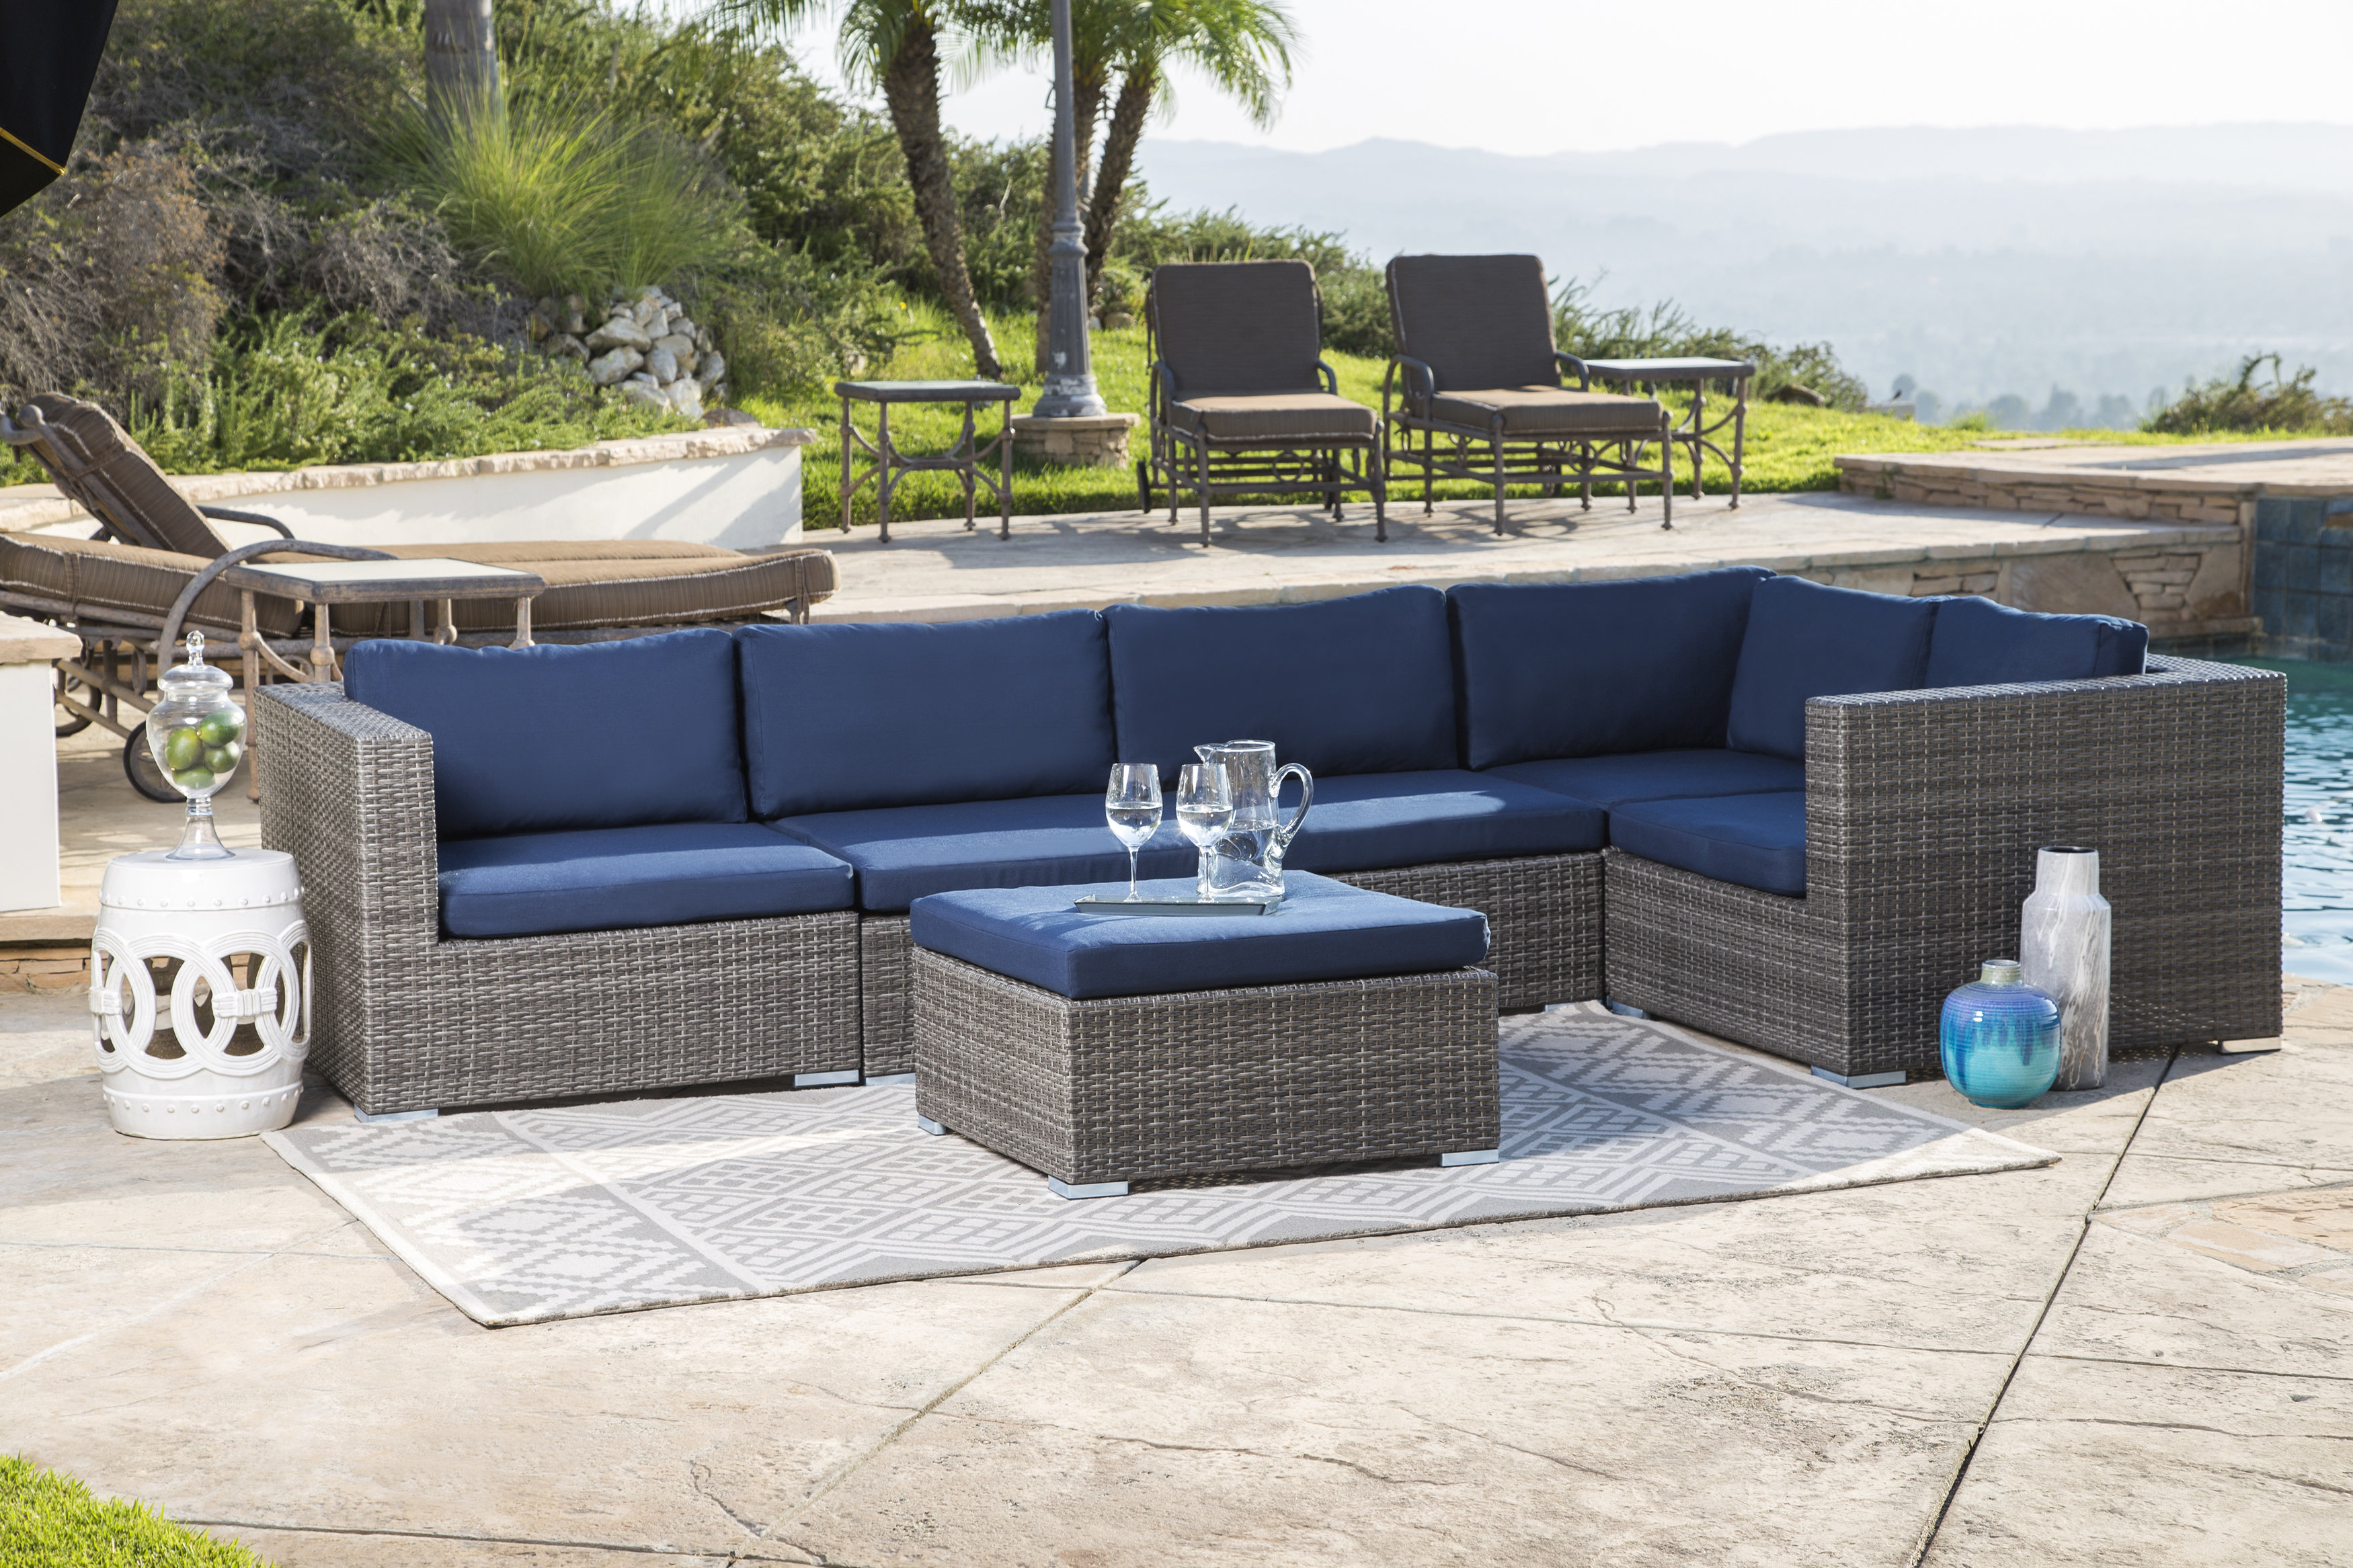 Lorentzen Patio Sectionals With Cushions Intended For Widely Used Ostrowski Outdoor Wicker Patio Sectional With Cushions (View 11 of 20)